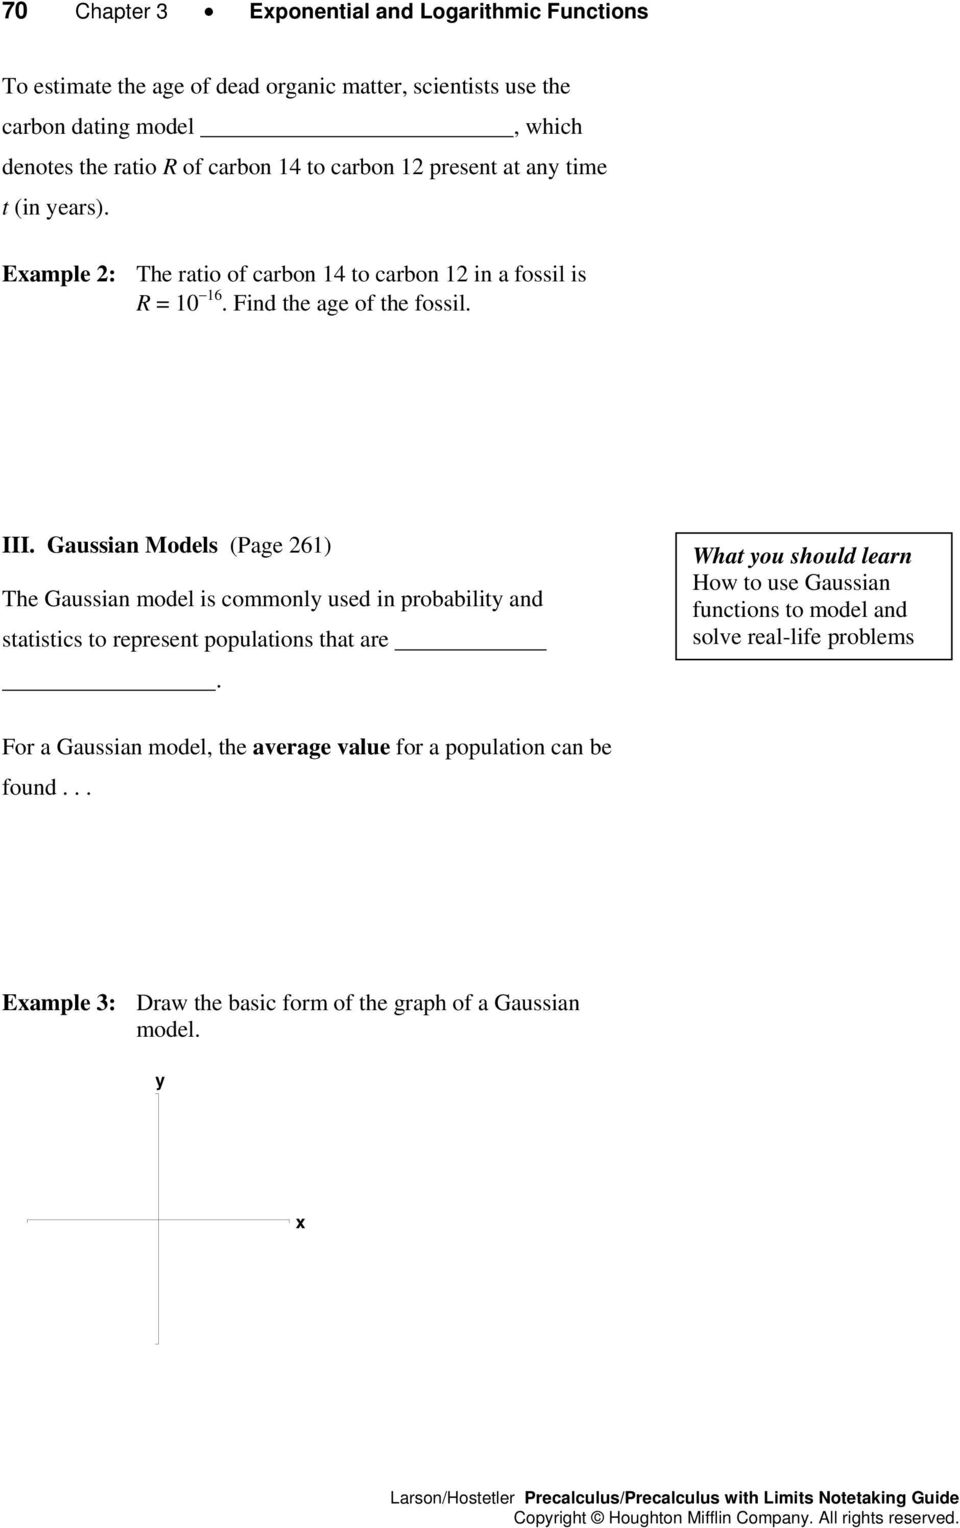 Gussin Models (Pge 26) The Gussin model is commonl used in probbilit nd sttistics to represent popultions tht re.